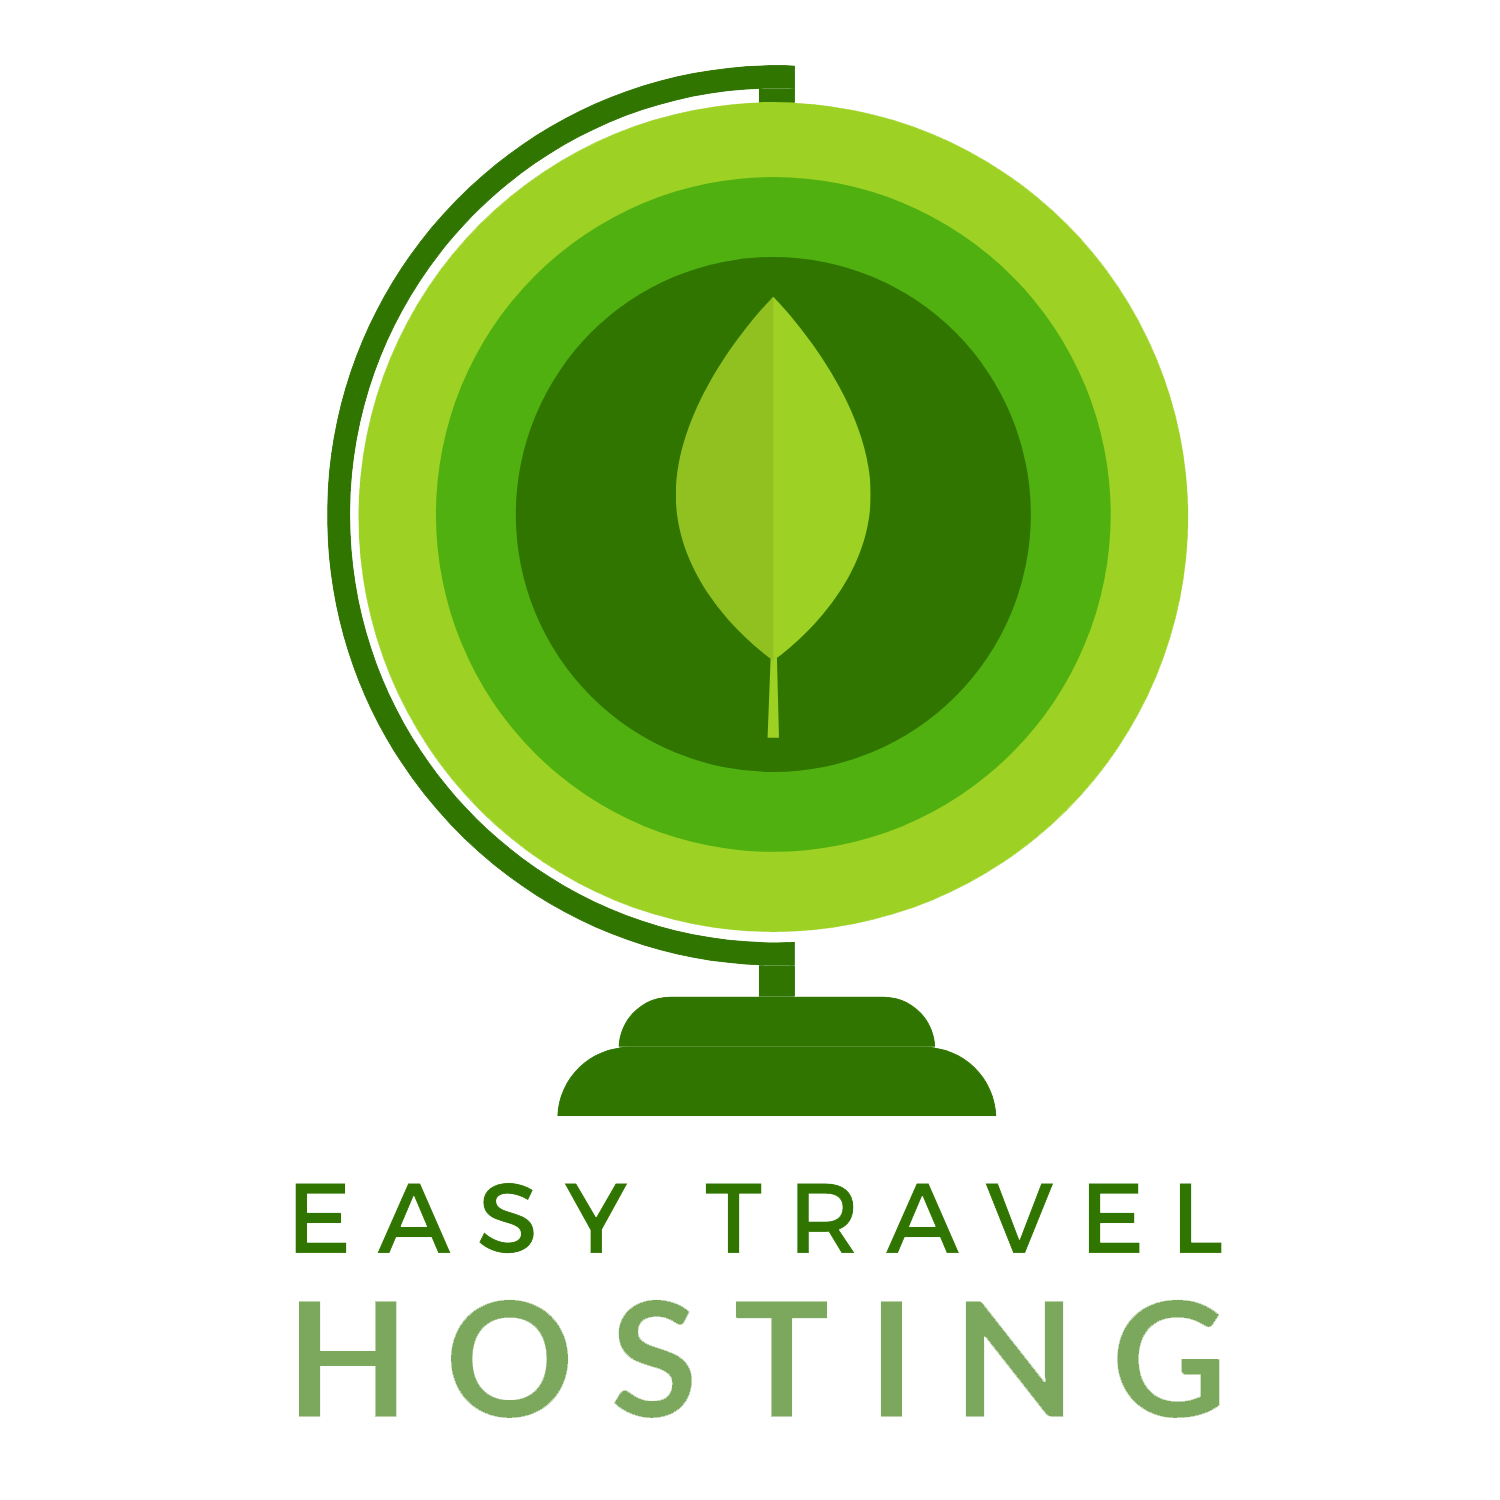 easy travel hosting ecologico